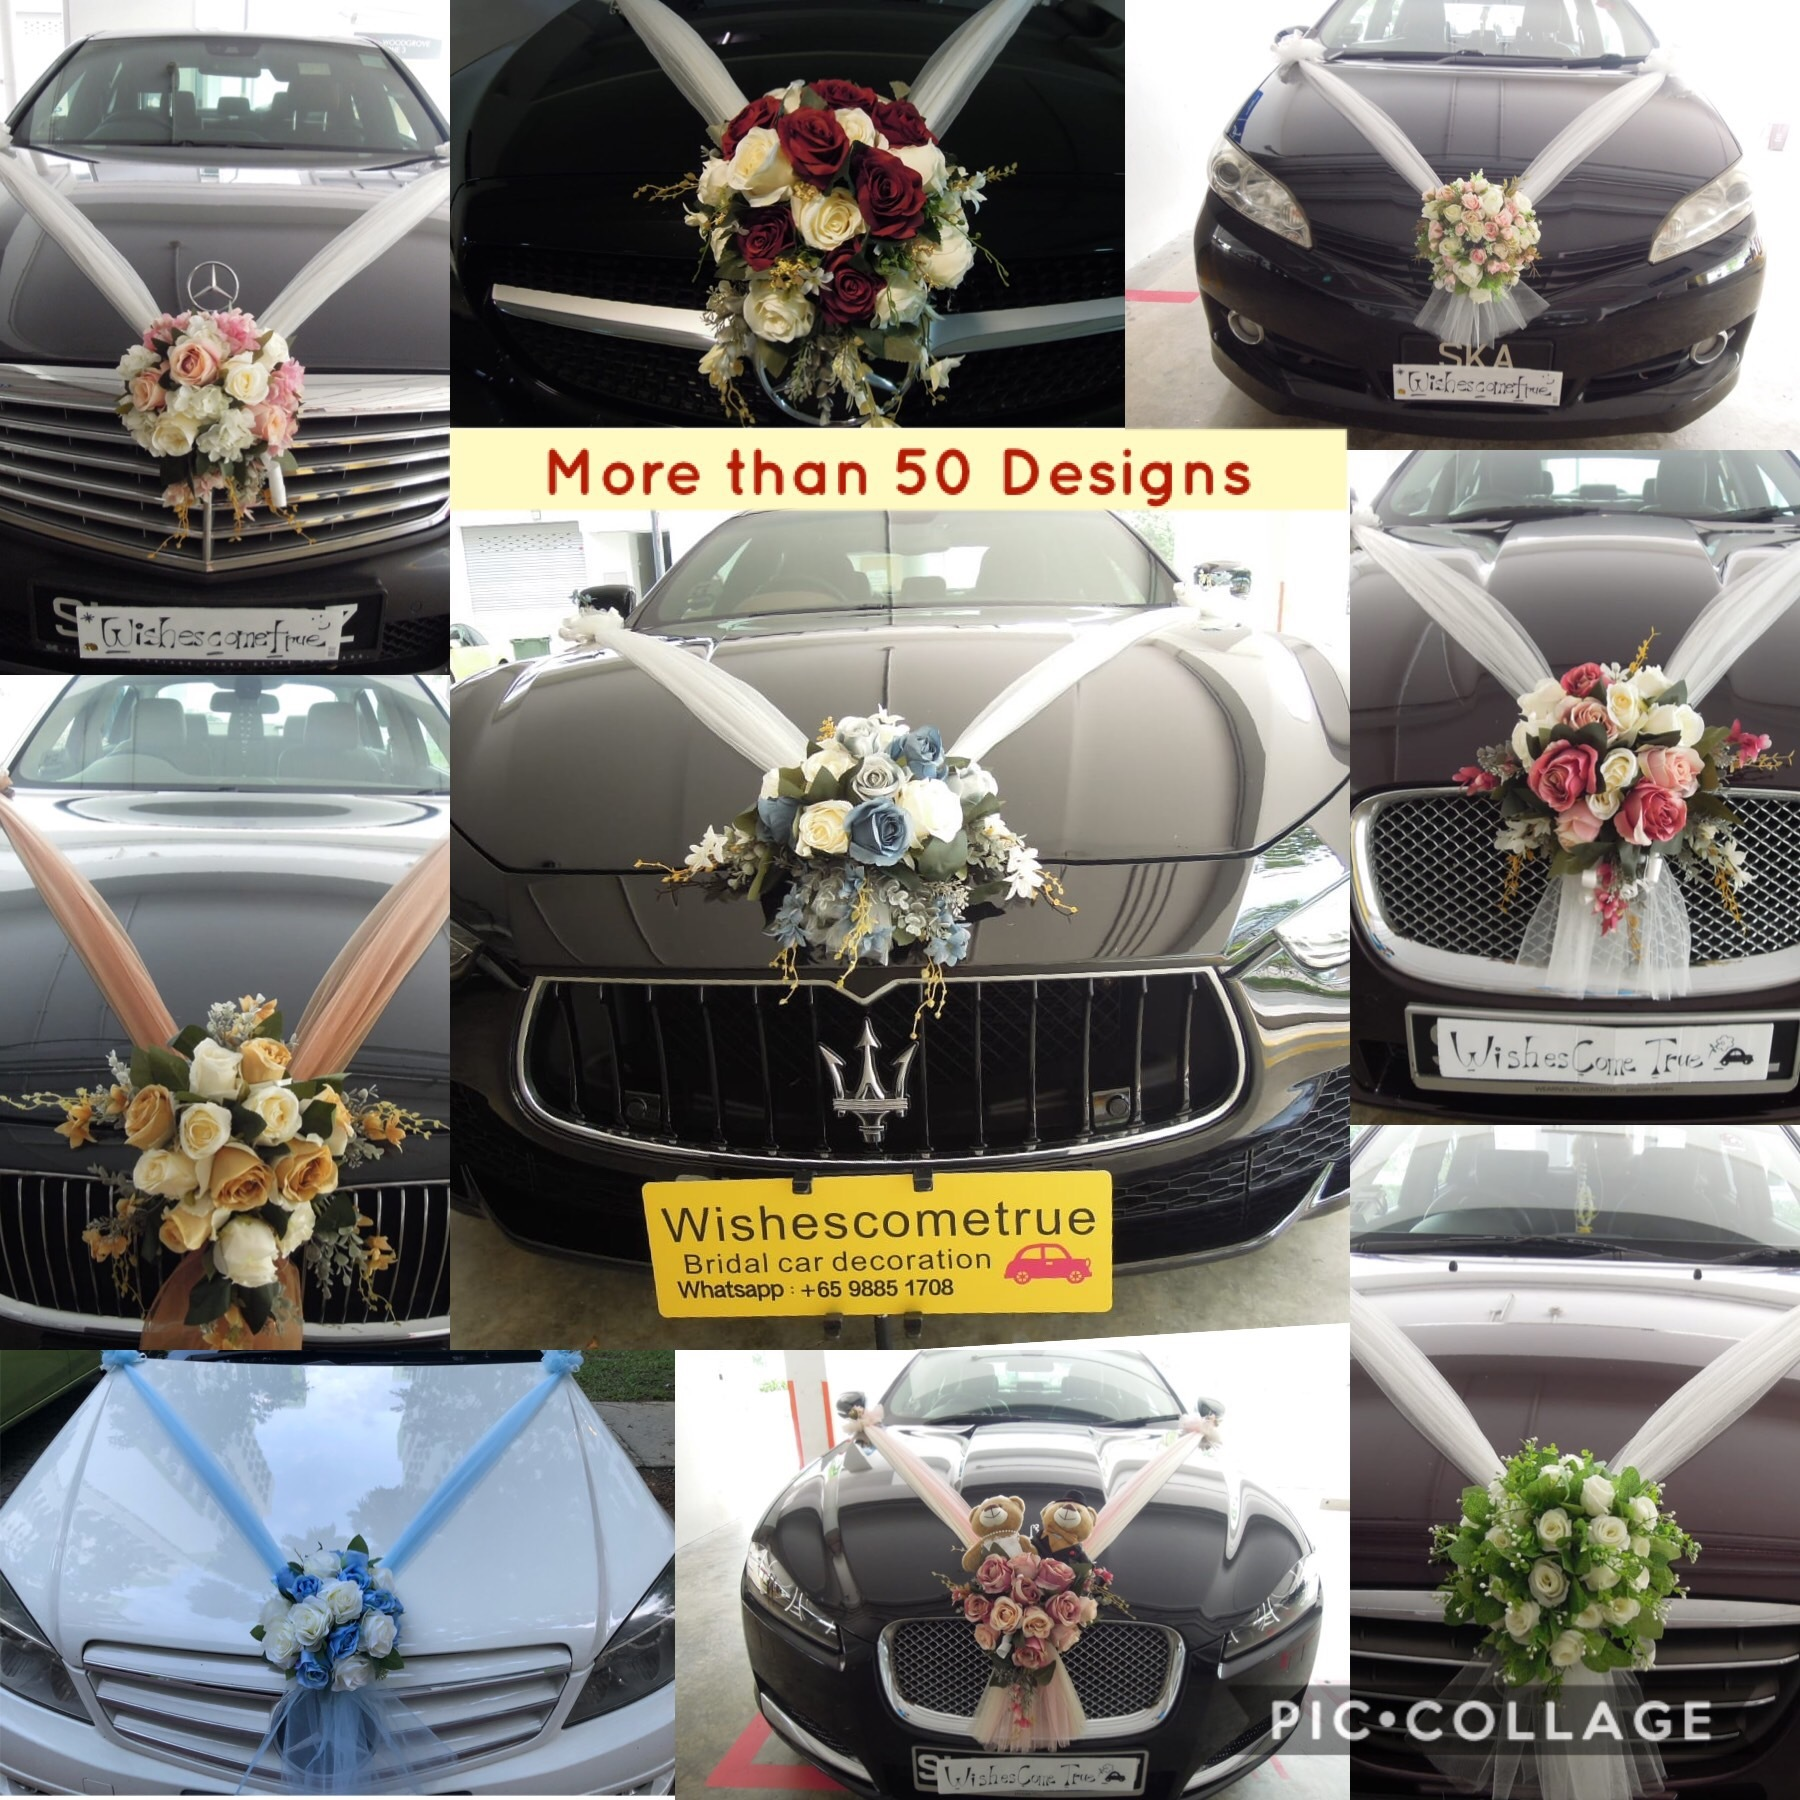 Car Decoration Weding Bridal Car Decoration Wedding Car Decoration Wedding Car Deco Bridal Car Deco Wedding Car Decor